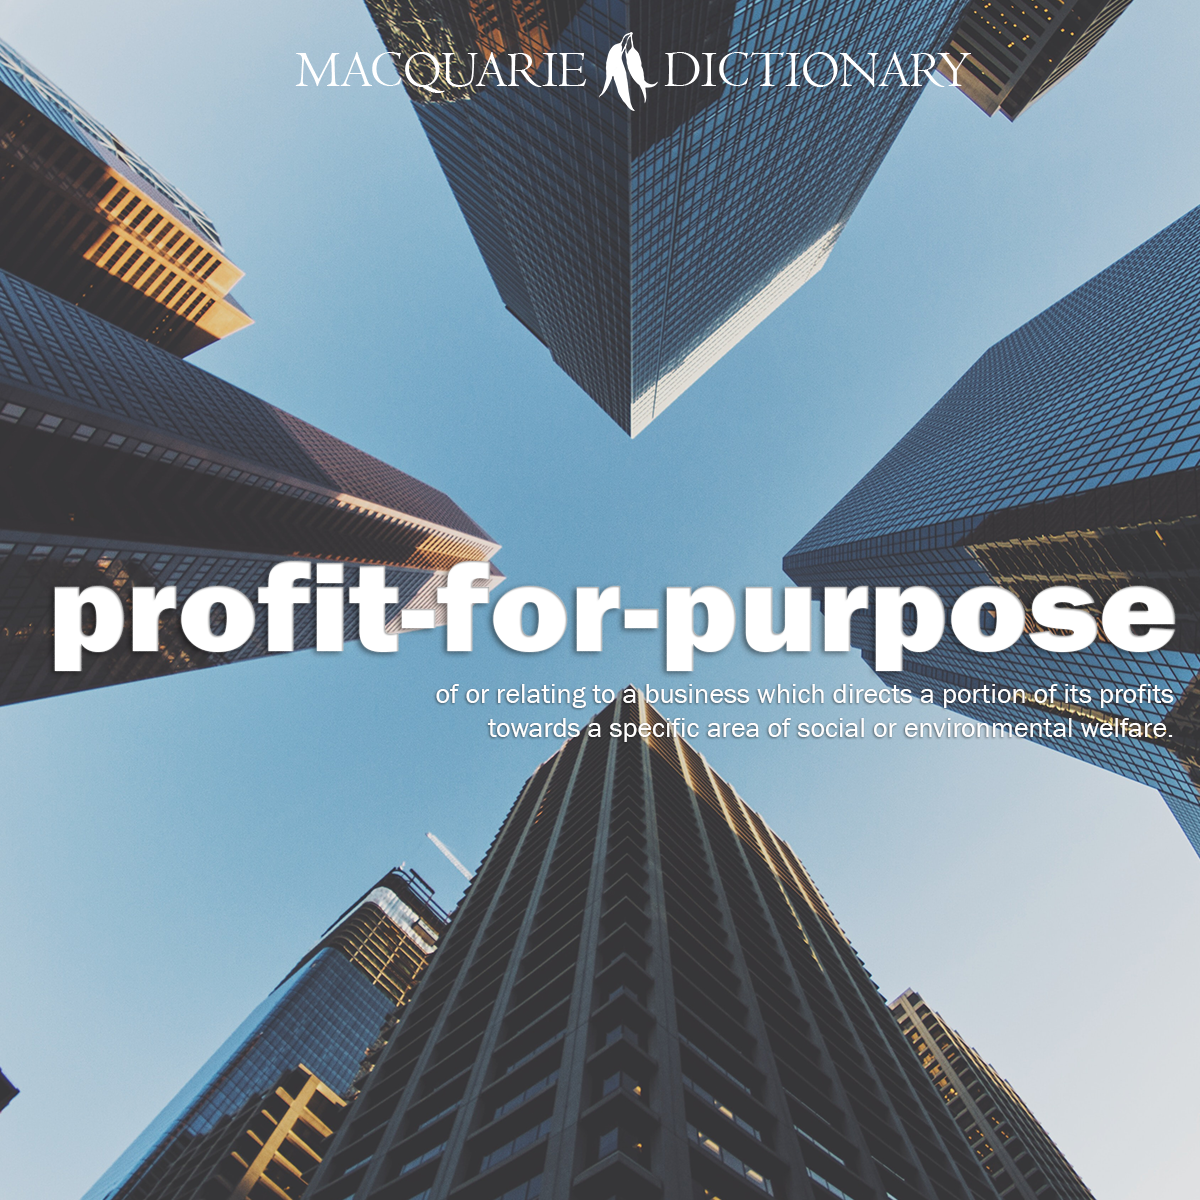 profit-for-purpose - of or relating to a business which directs a portion of its profits towards a specific area of social or environmental welfare: a profit-for-purpose organisation; the profit-for-purpose sector.